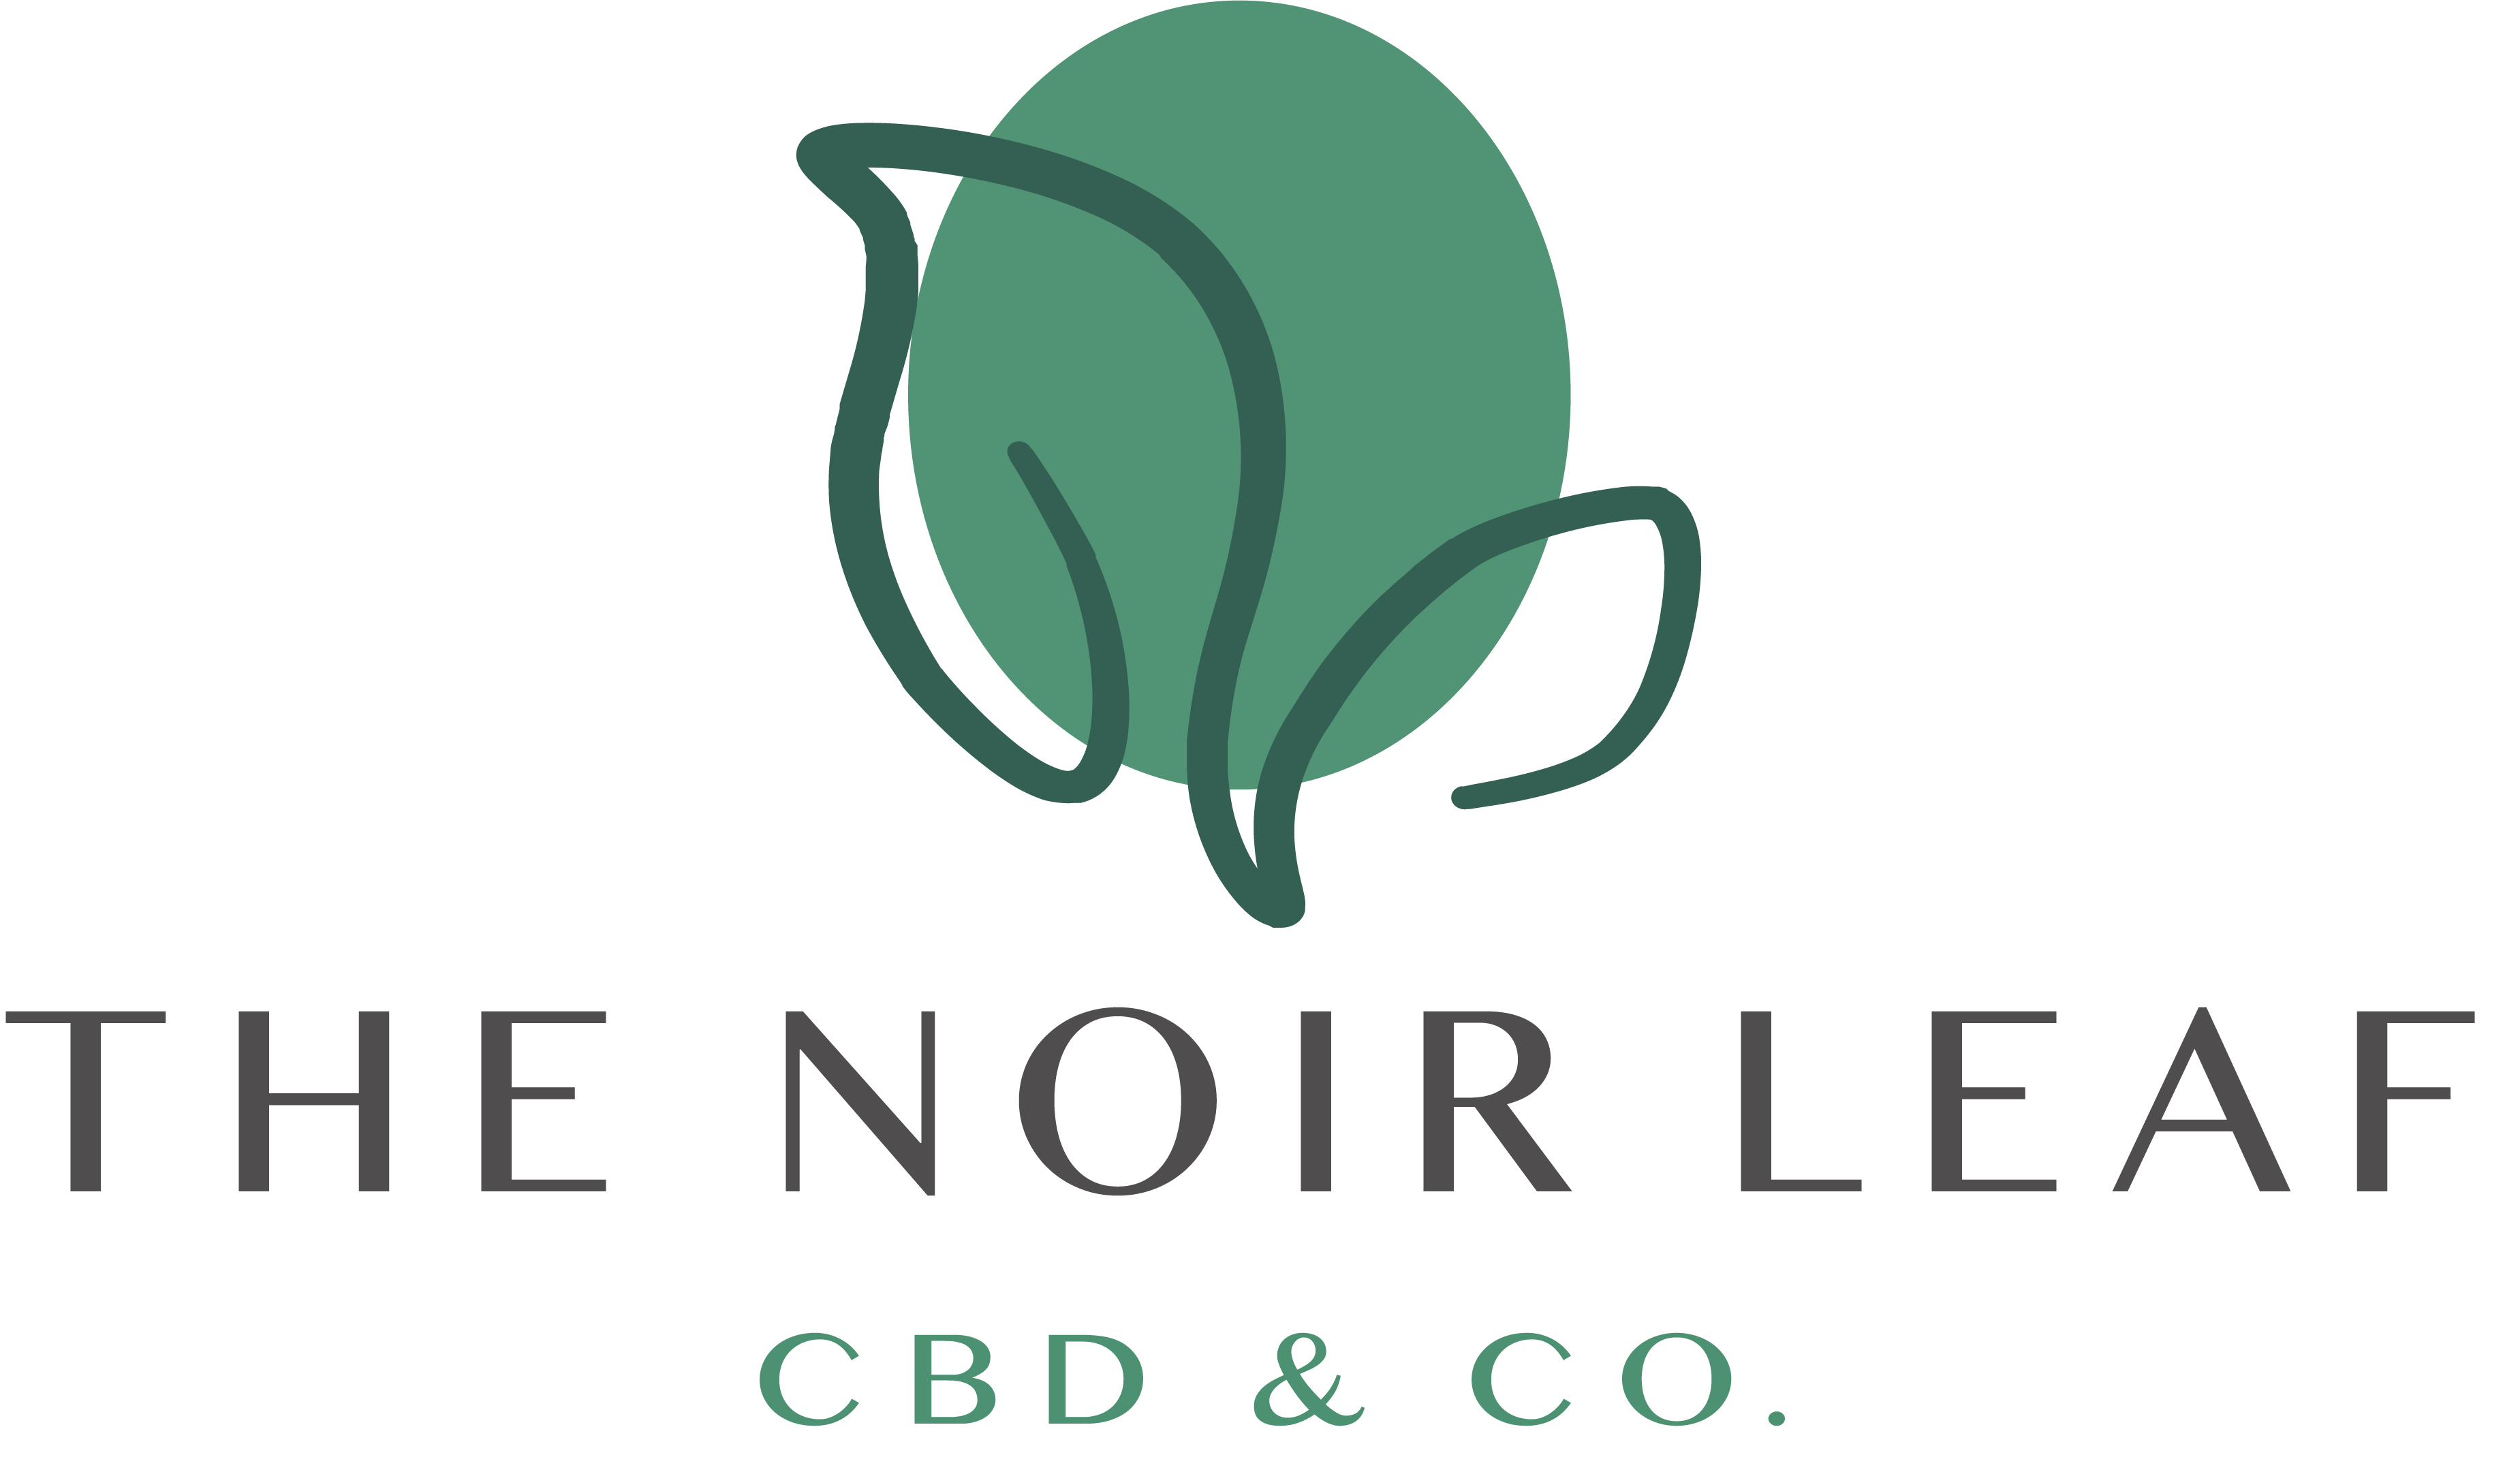 The Noir Leaf